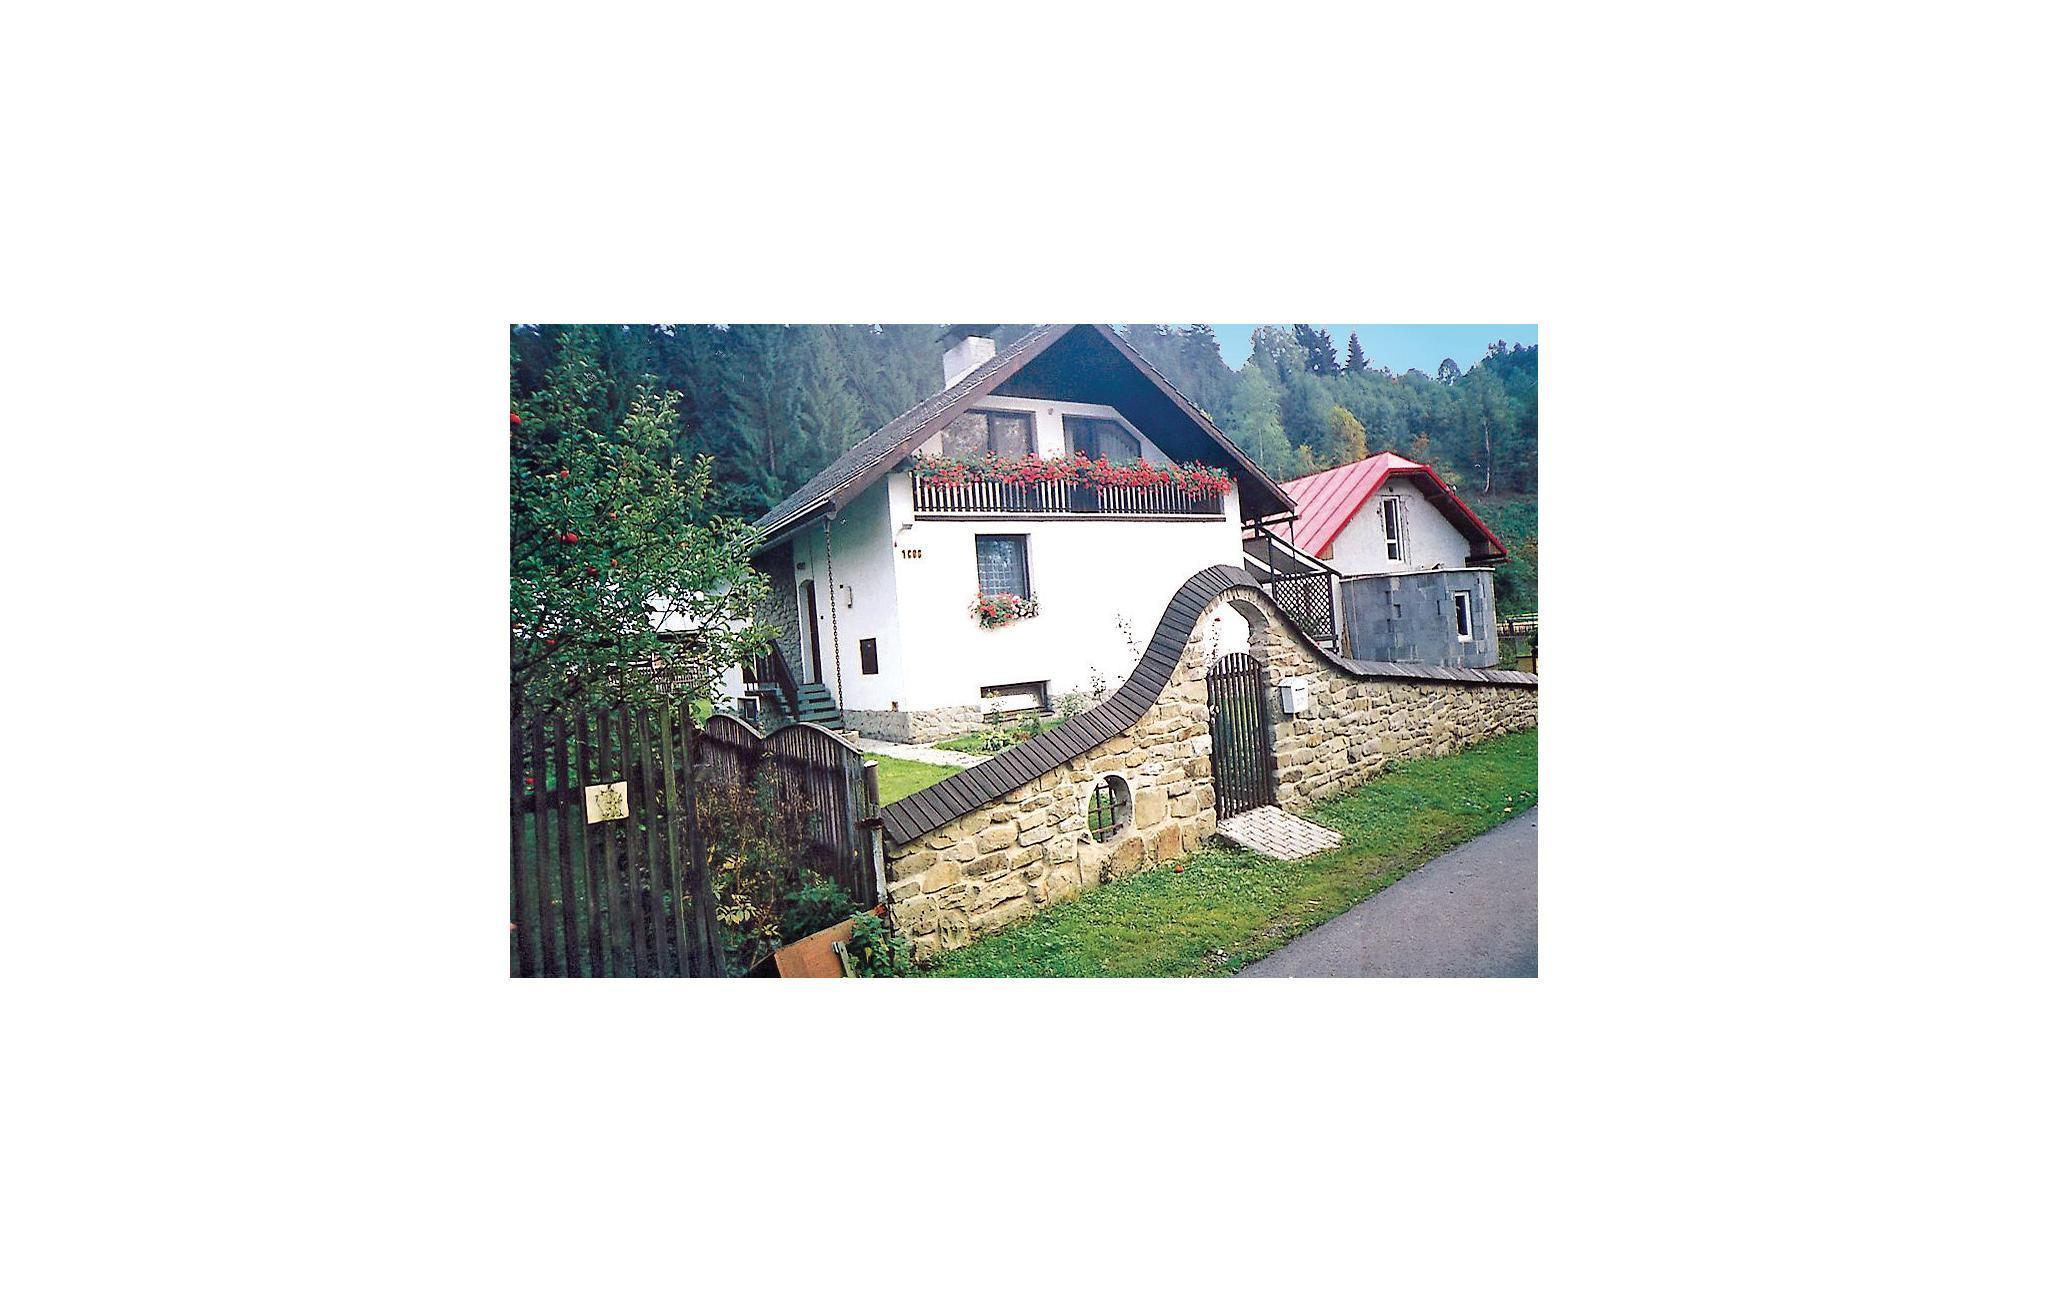 private holiday home Slovakia_146-TST979 .jpg